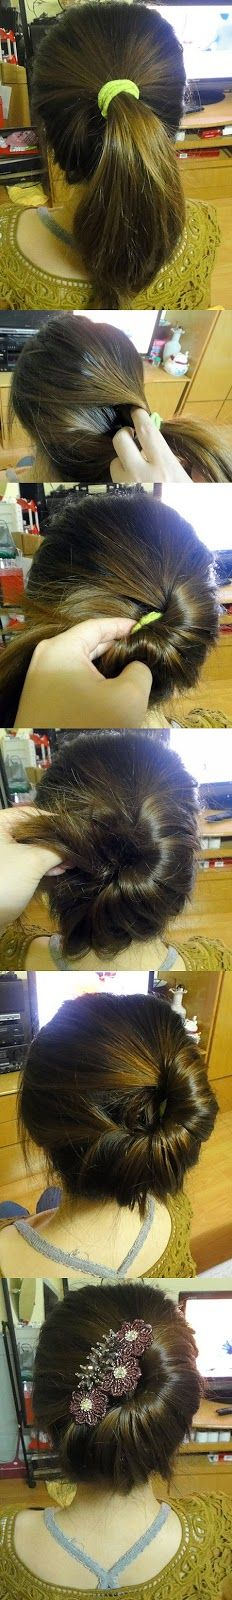 Tucked-in updo: I've only seen this as an element of another larger style. I like it with just a nice clip or flower! #hair #summer